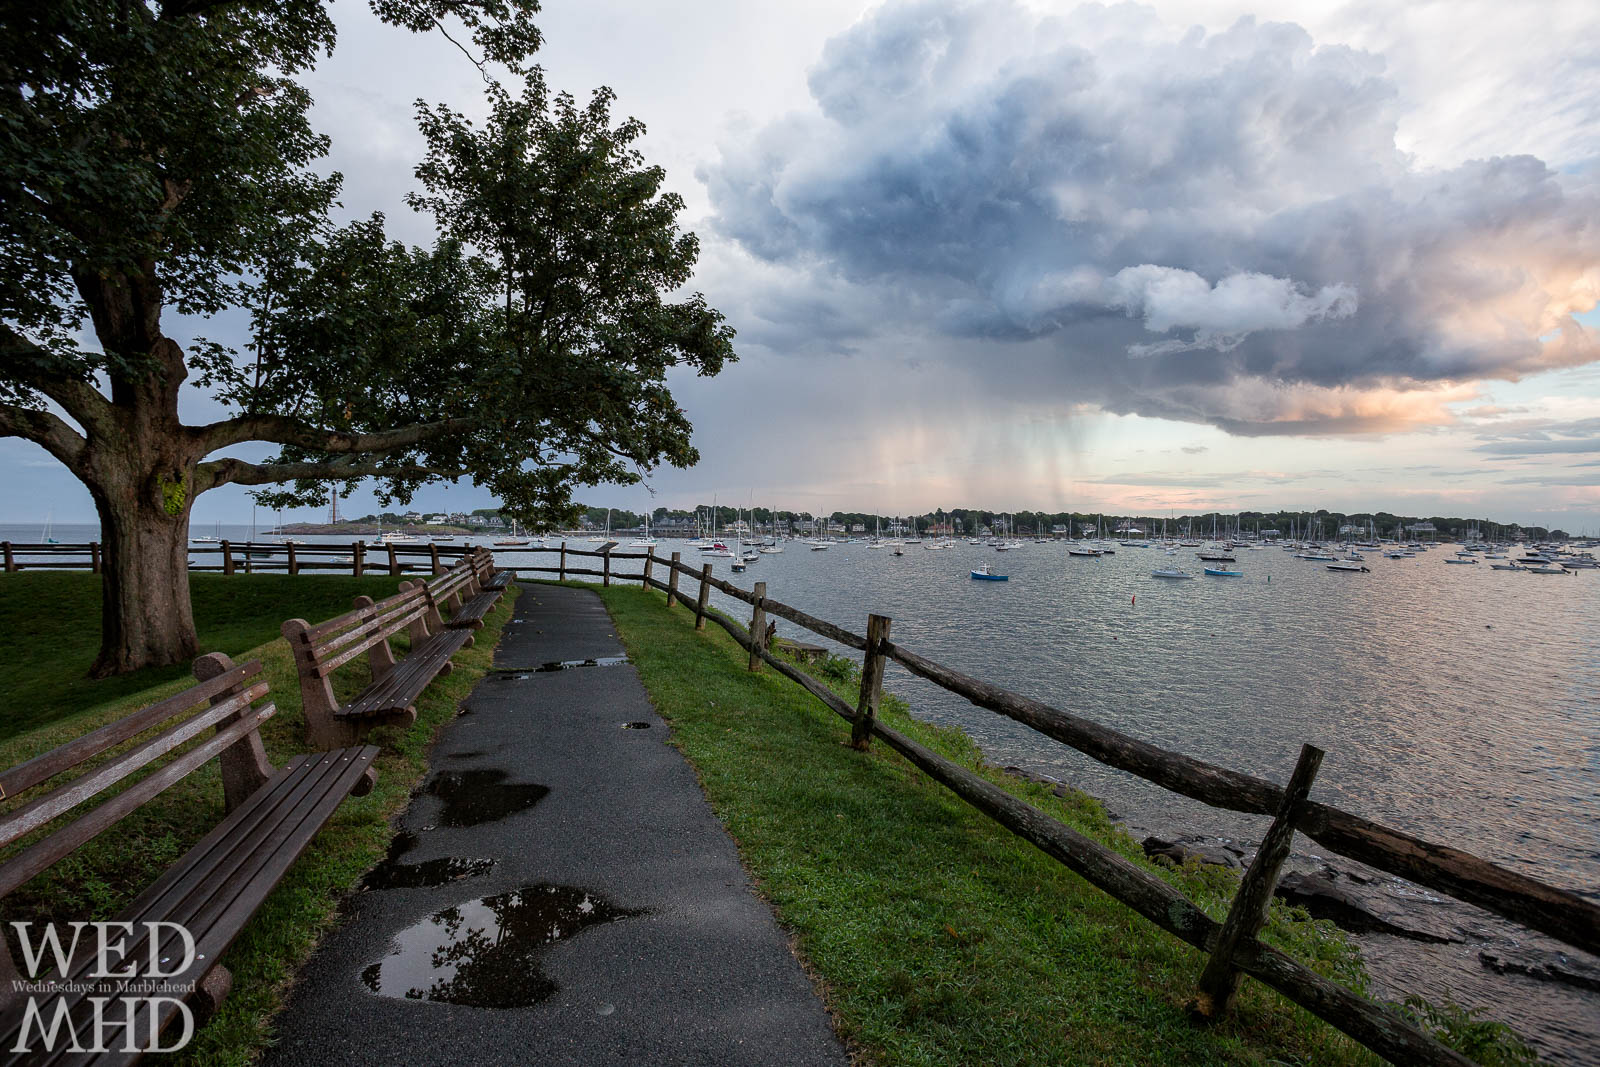 The great tree at Fort Sewall sets the scene for this view of Marblehead Harbor and a large rain cloud